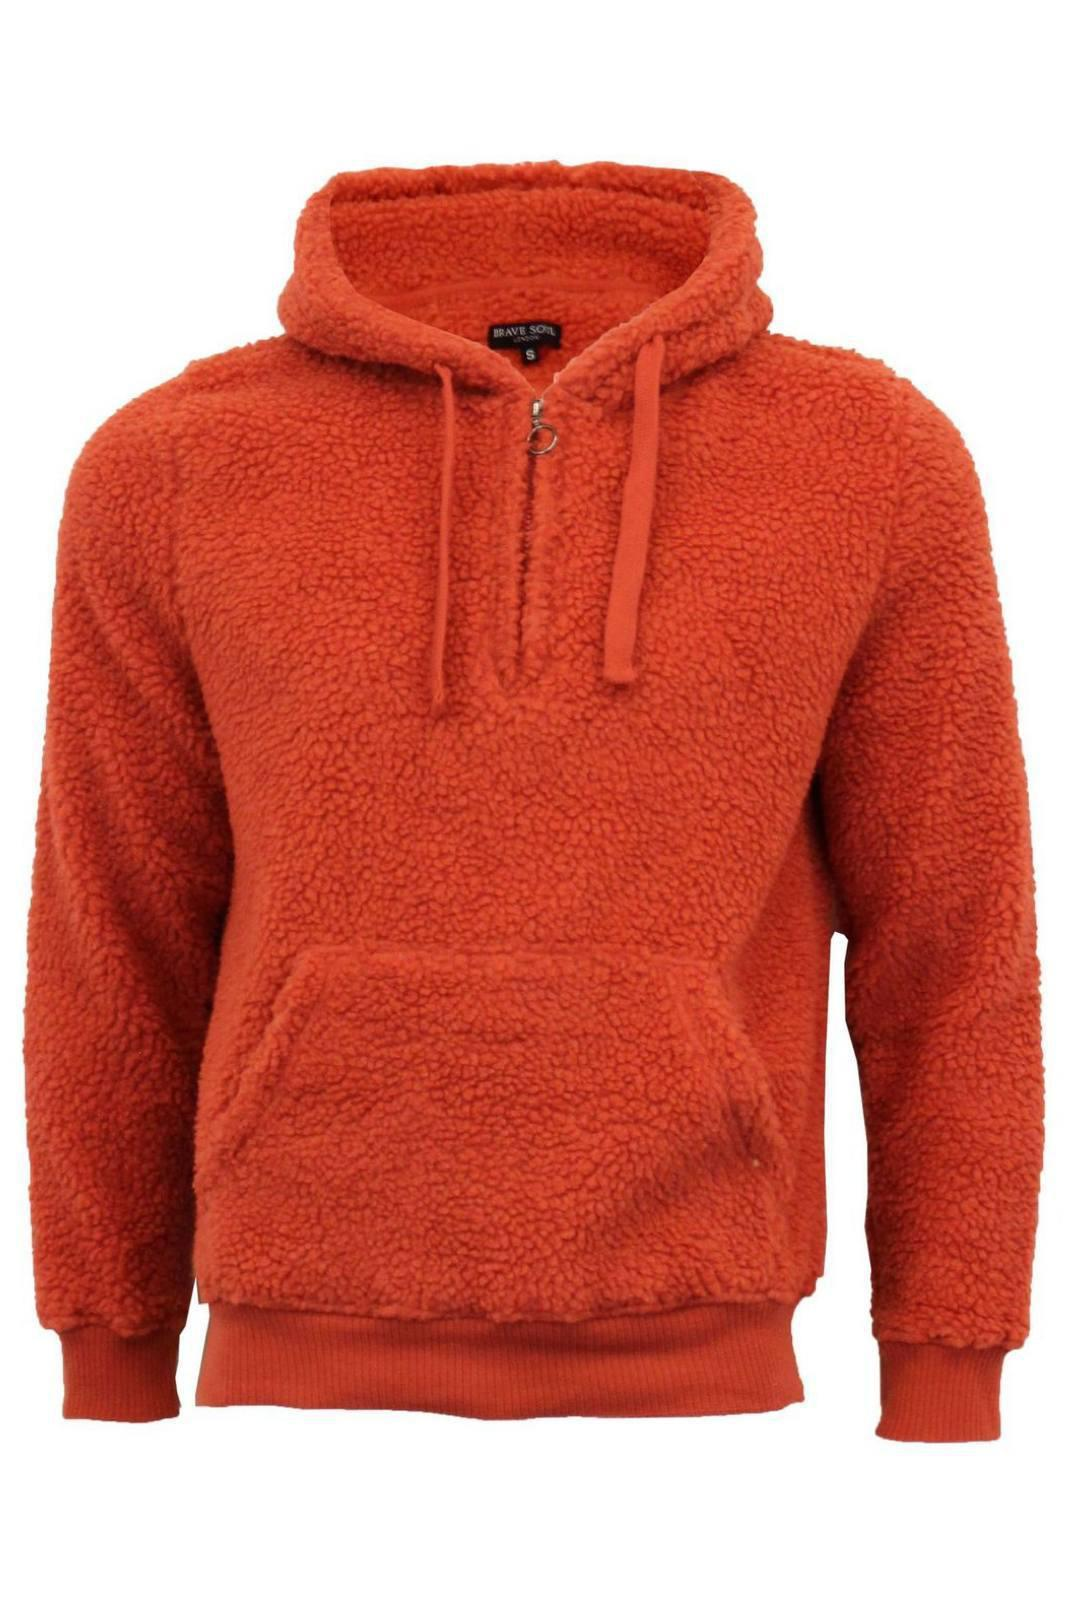 Jersey - Sherpa Fleece Hoodie Orange